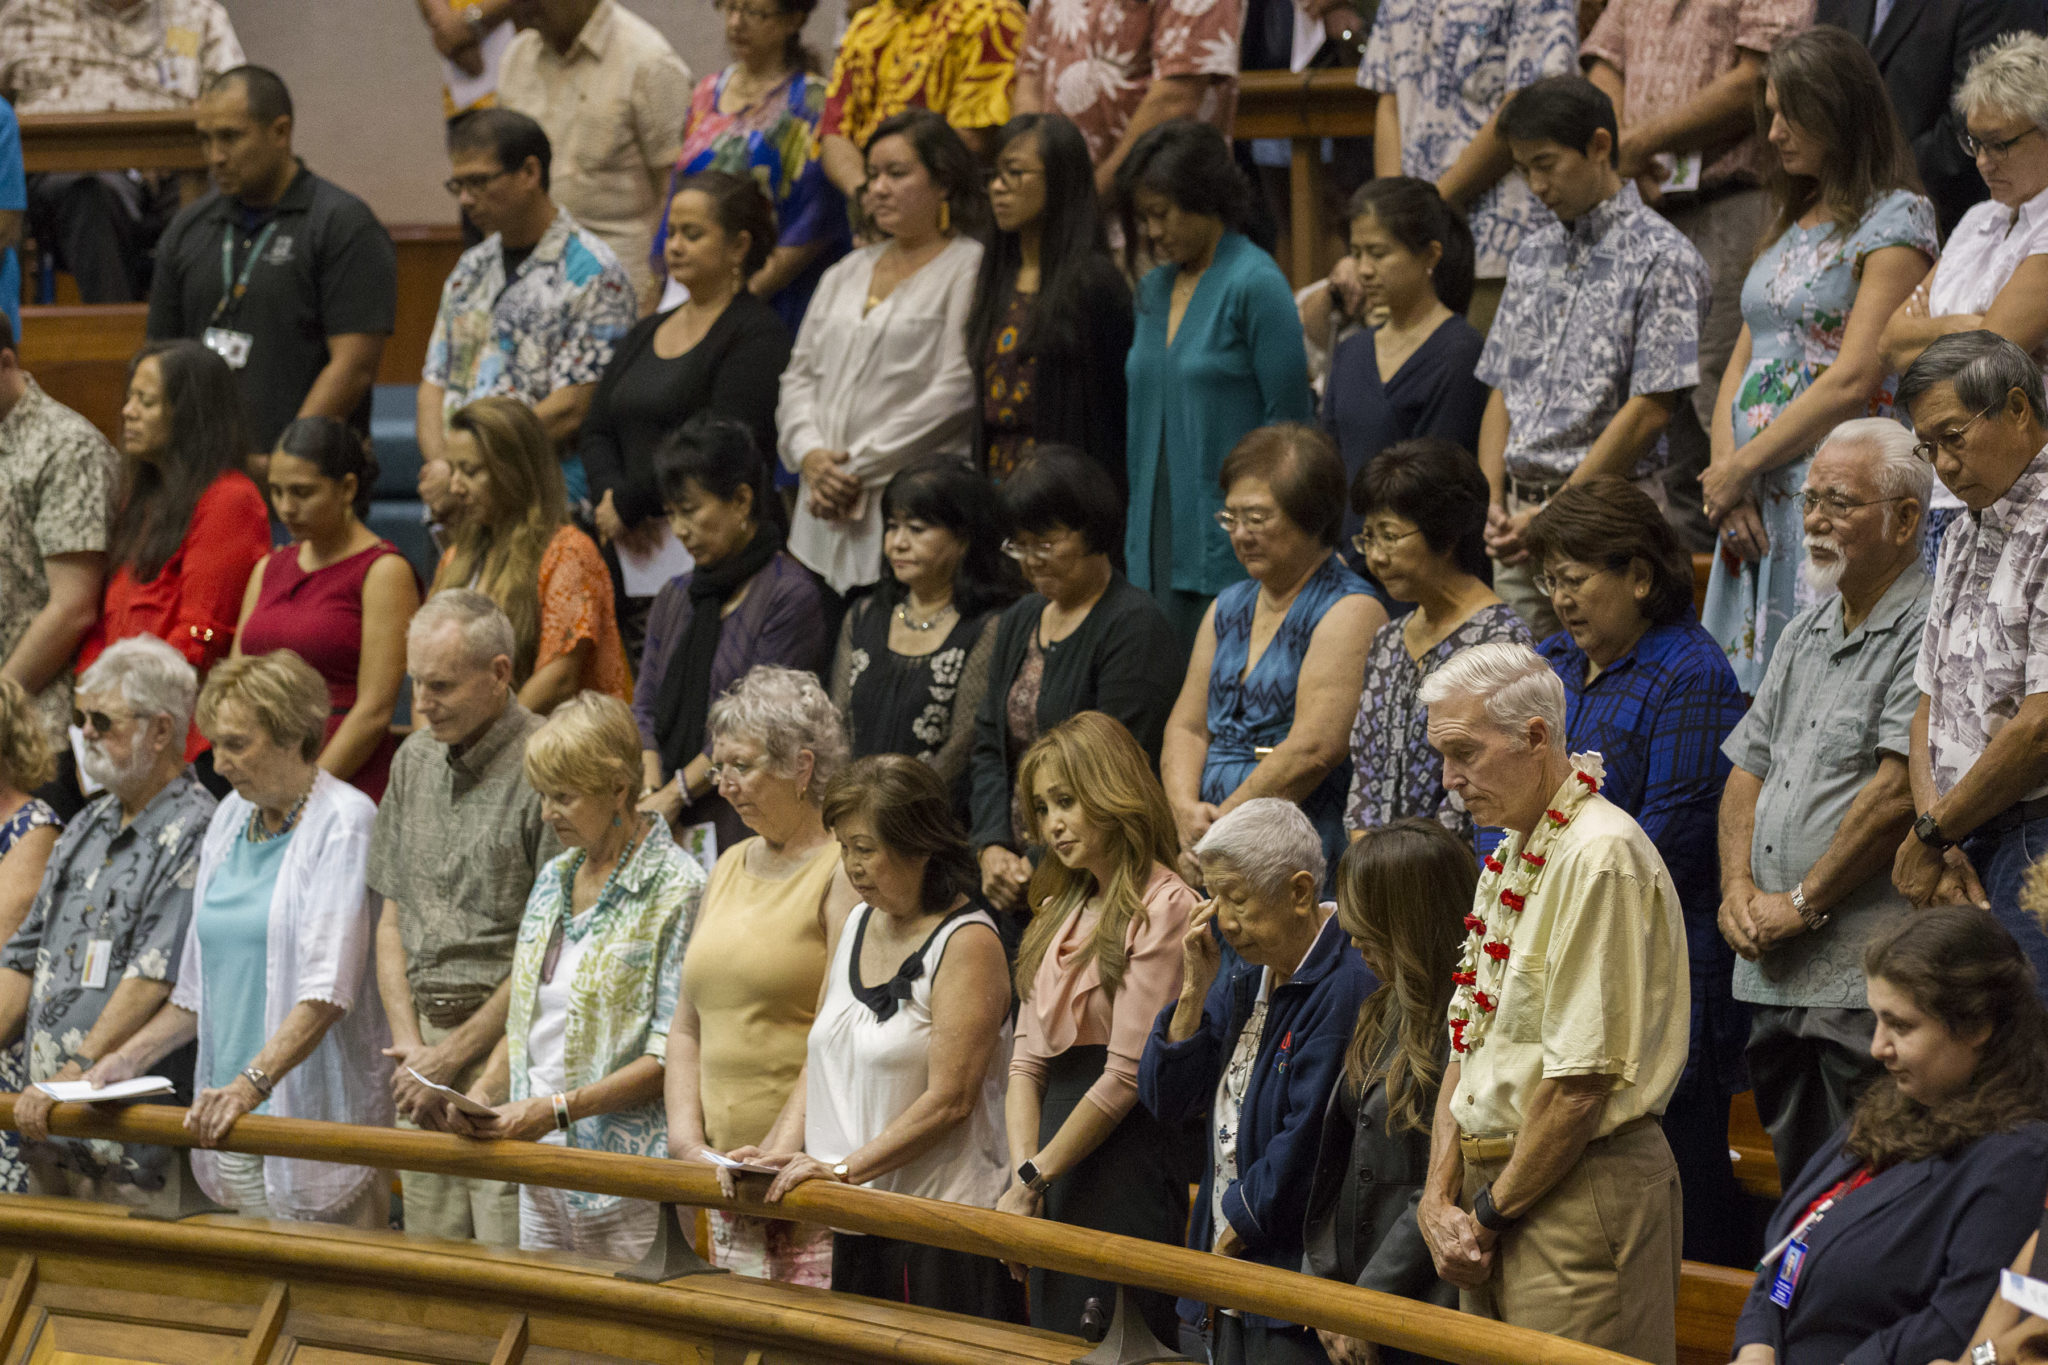 <p>Members of the public join in prayer at the start of the the House session.</p>